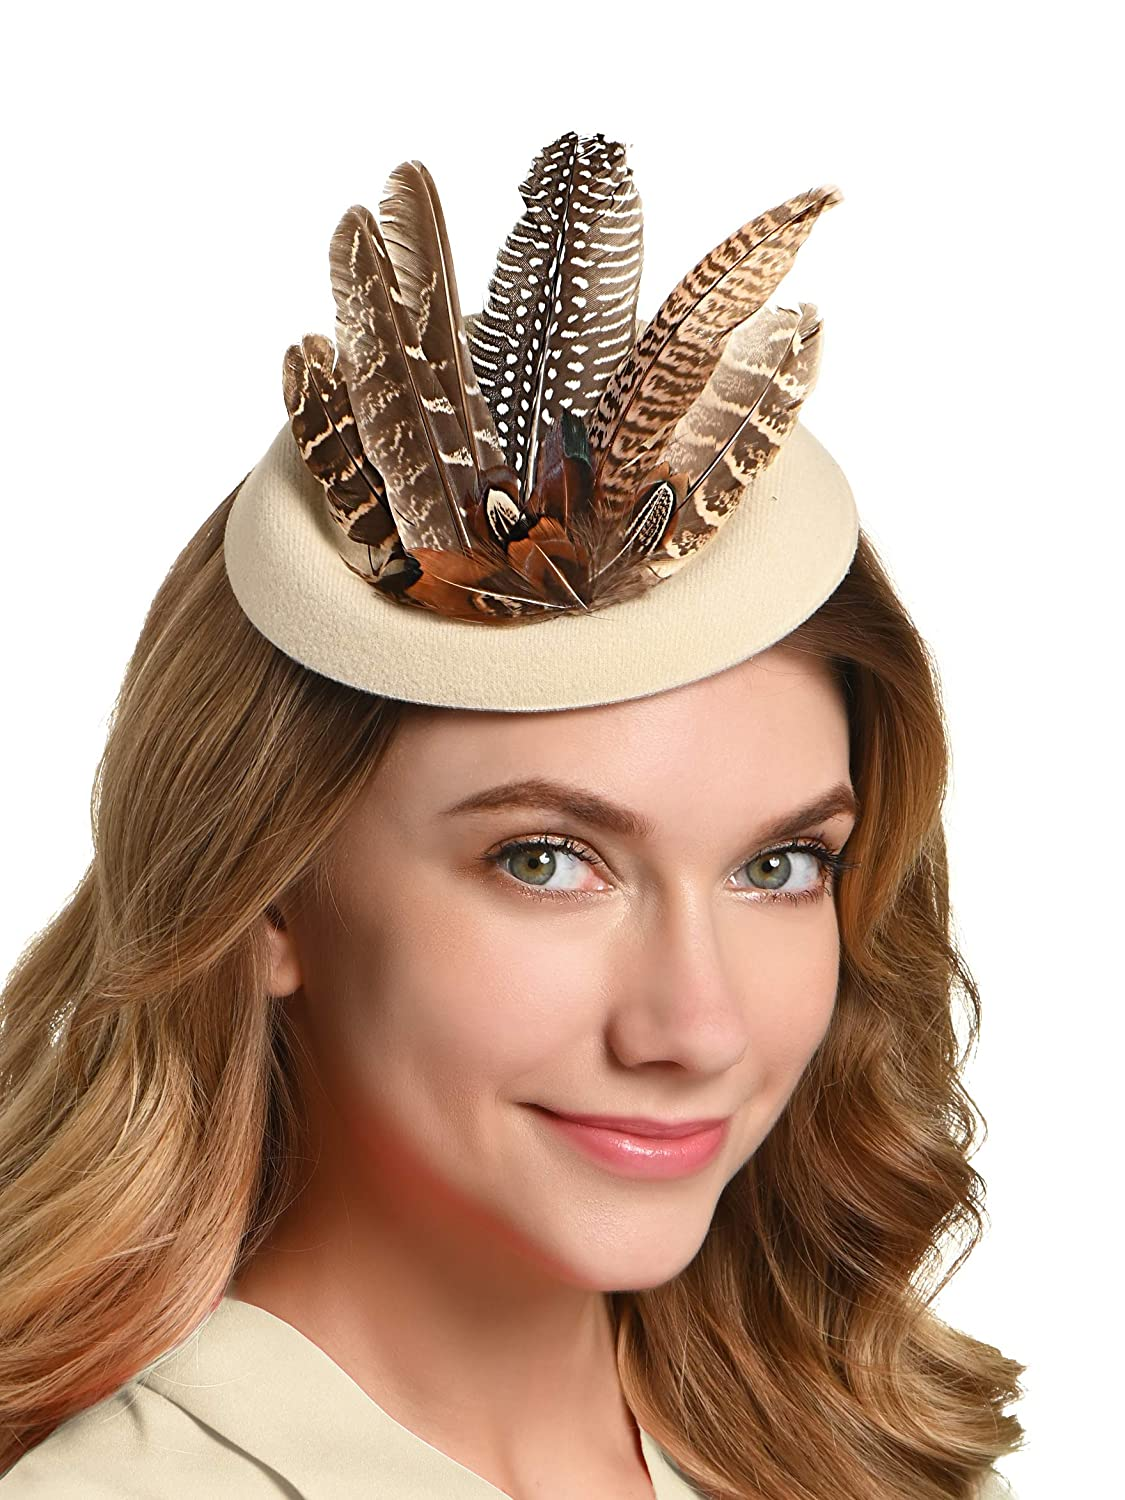 1950s Women's Hat Styles & History Zivyes Fascinator Hats for Women Pillbox Hat Pheasant Feather Race Hair Clip Headband $11.99 AT vintagedancer.com